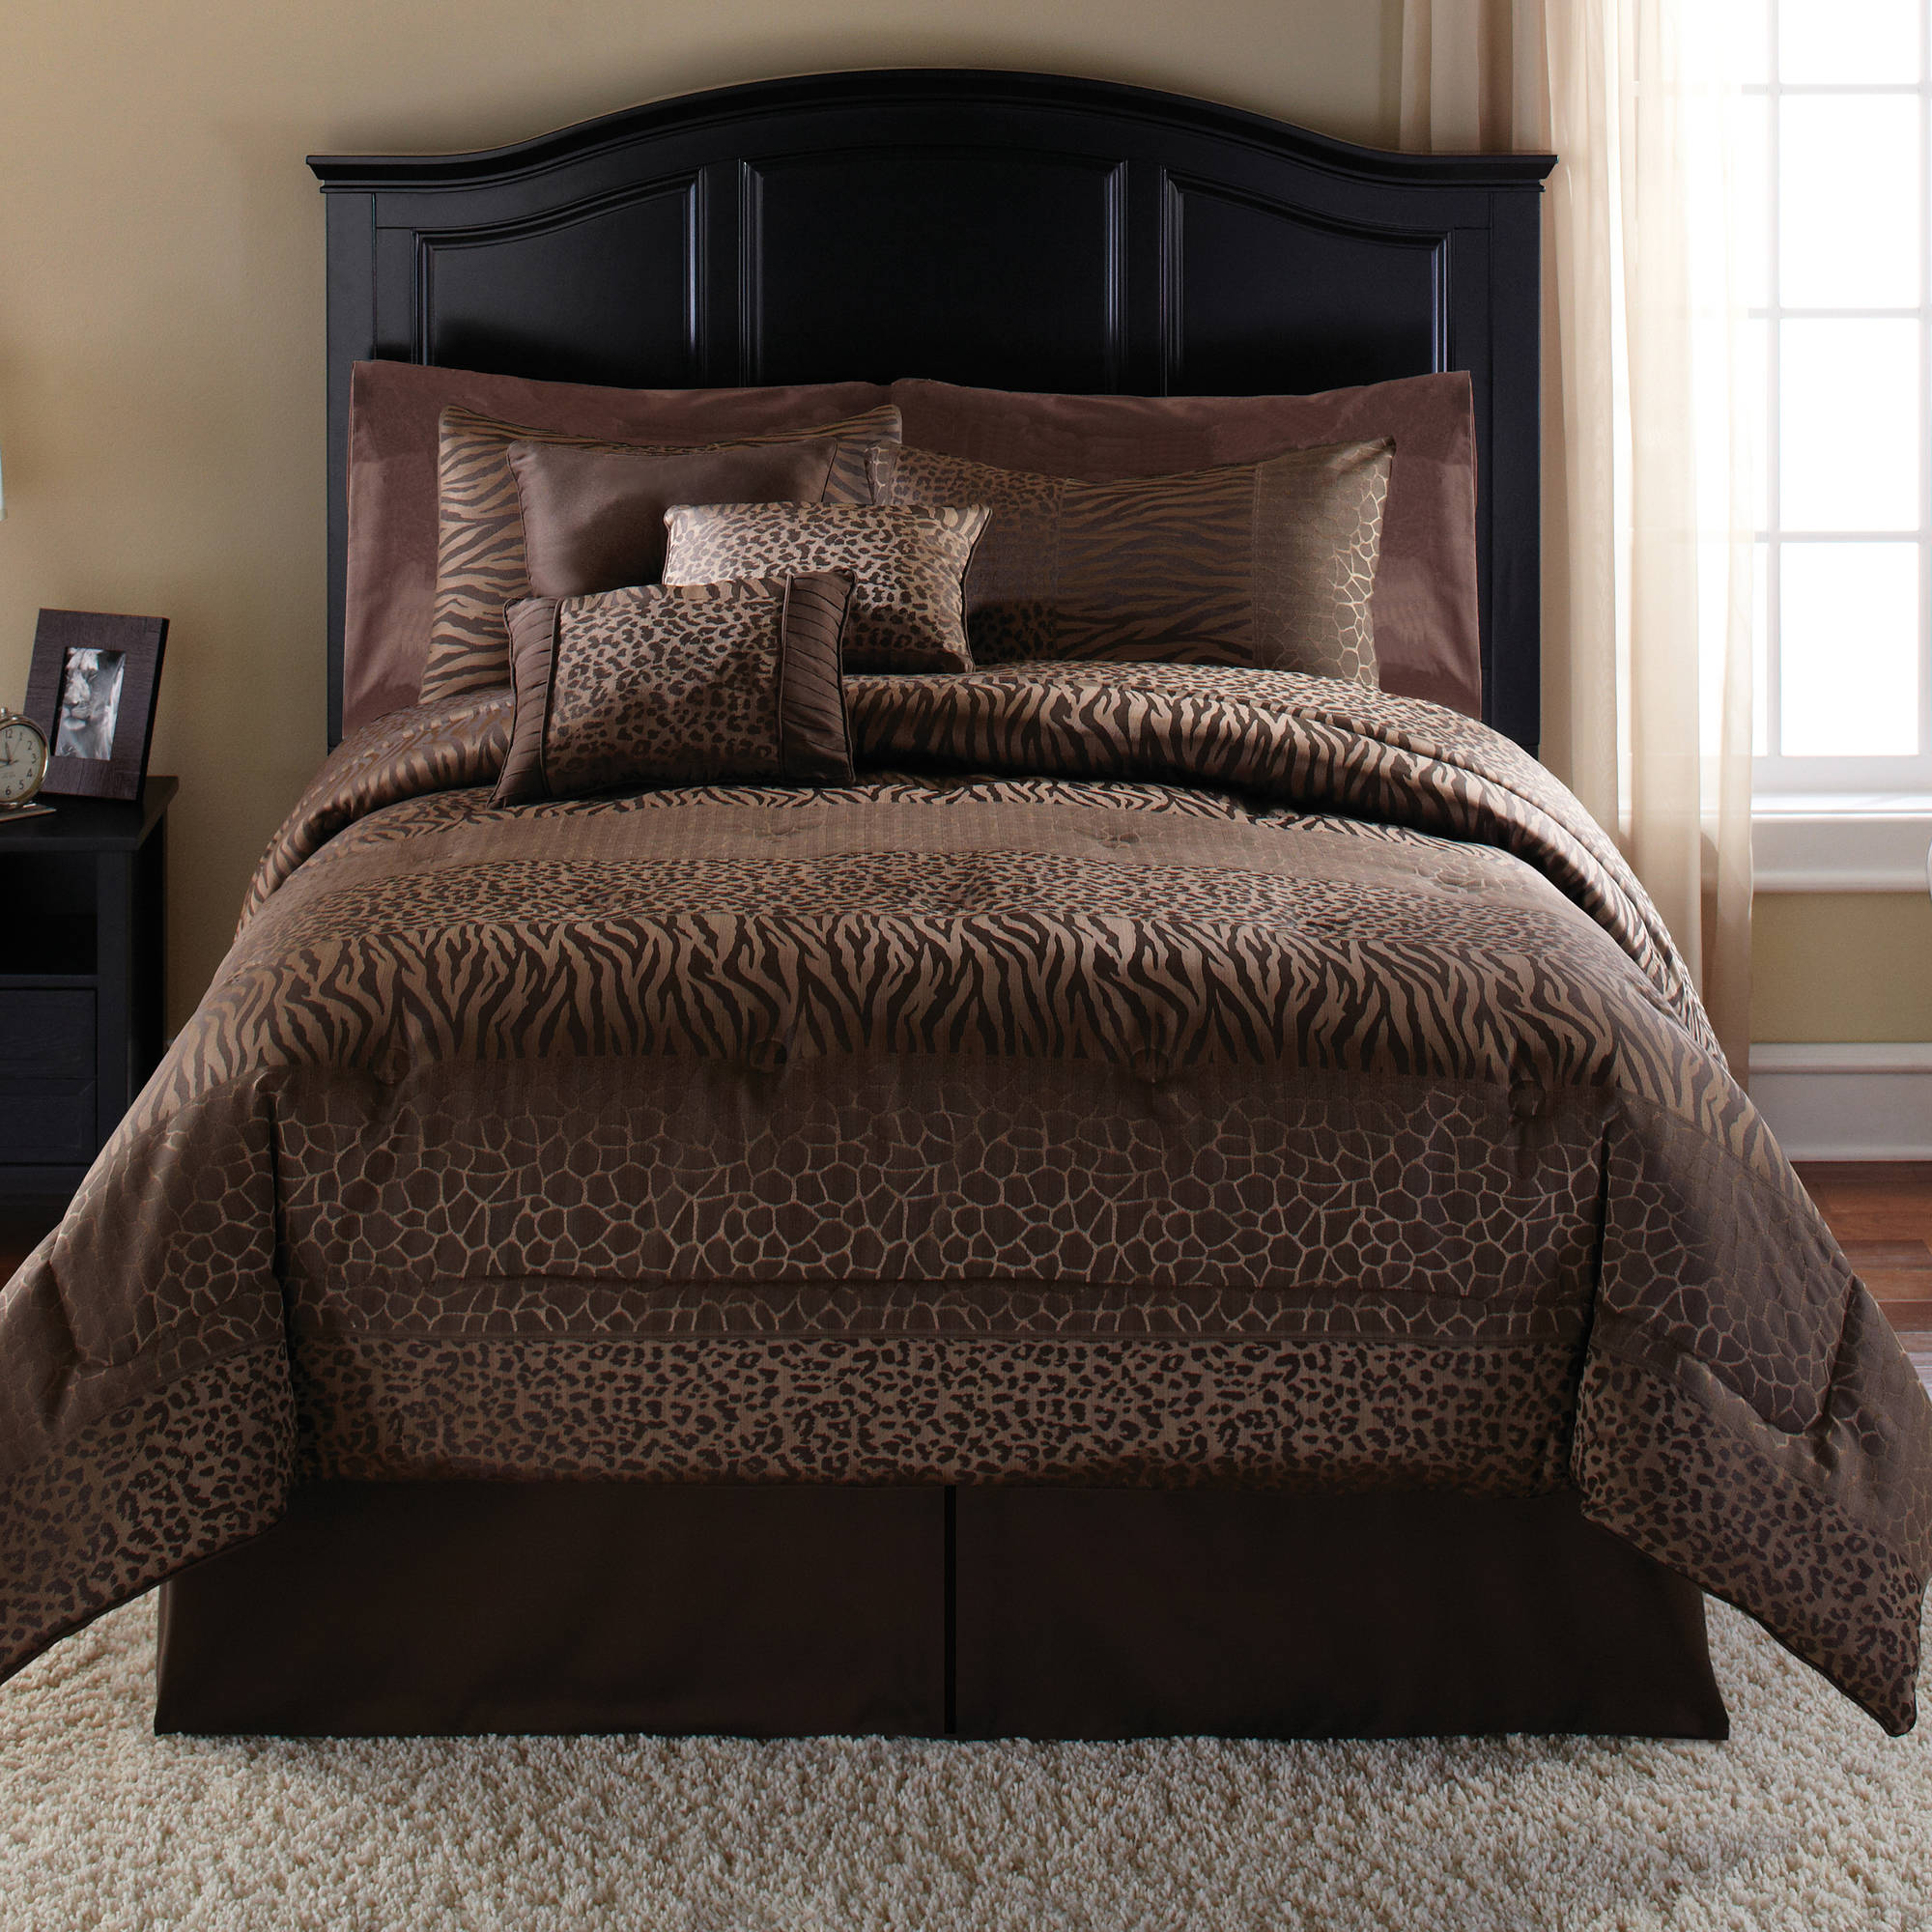 Bedding Decor: Mainstays 7 Piece Safari Comforter Set, Full/Queen